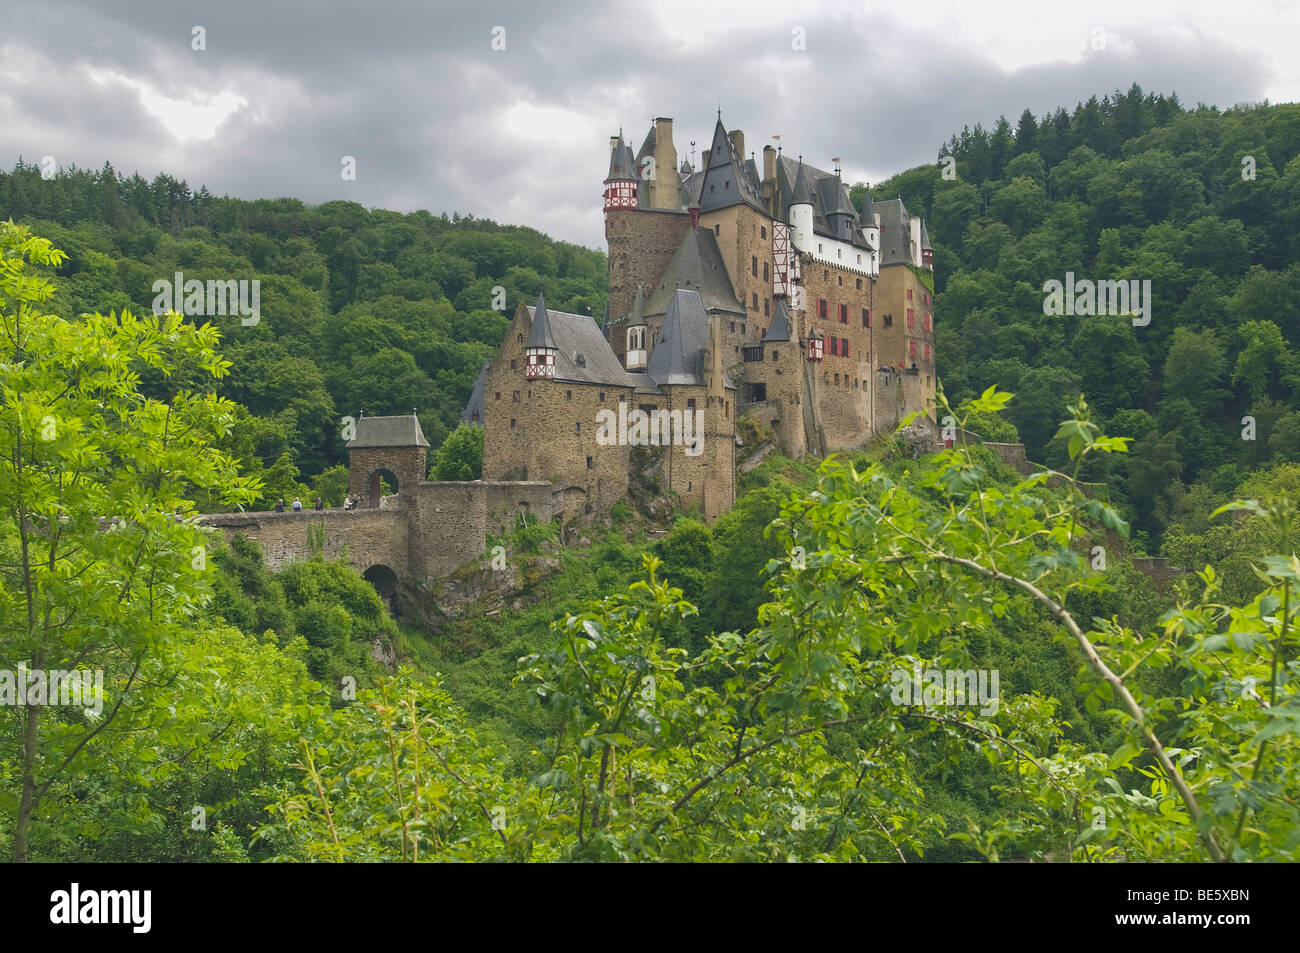 Eltz castle in stormy atmosphere, Wierschern, Rhineland-Palatinate, Germany, Europe - Stock Image